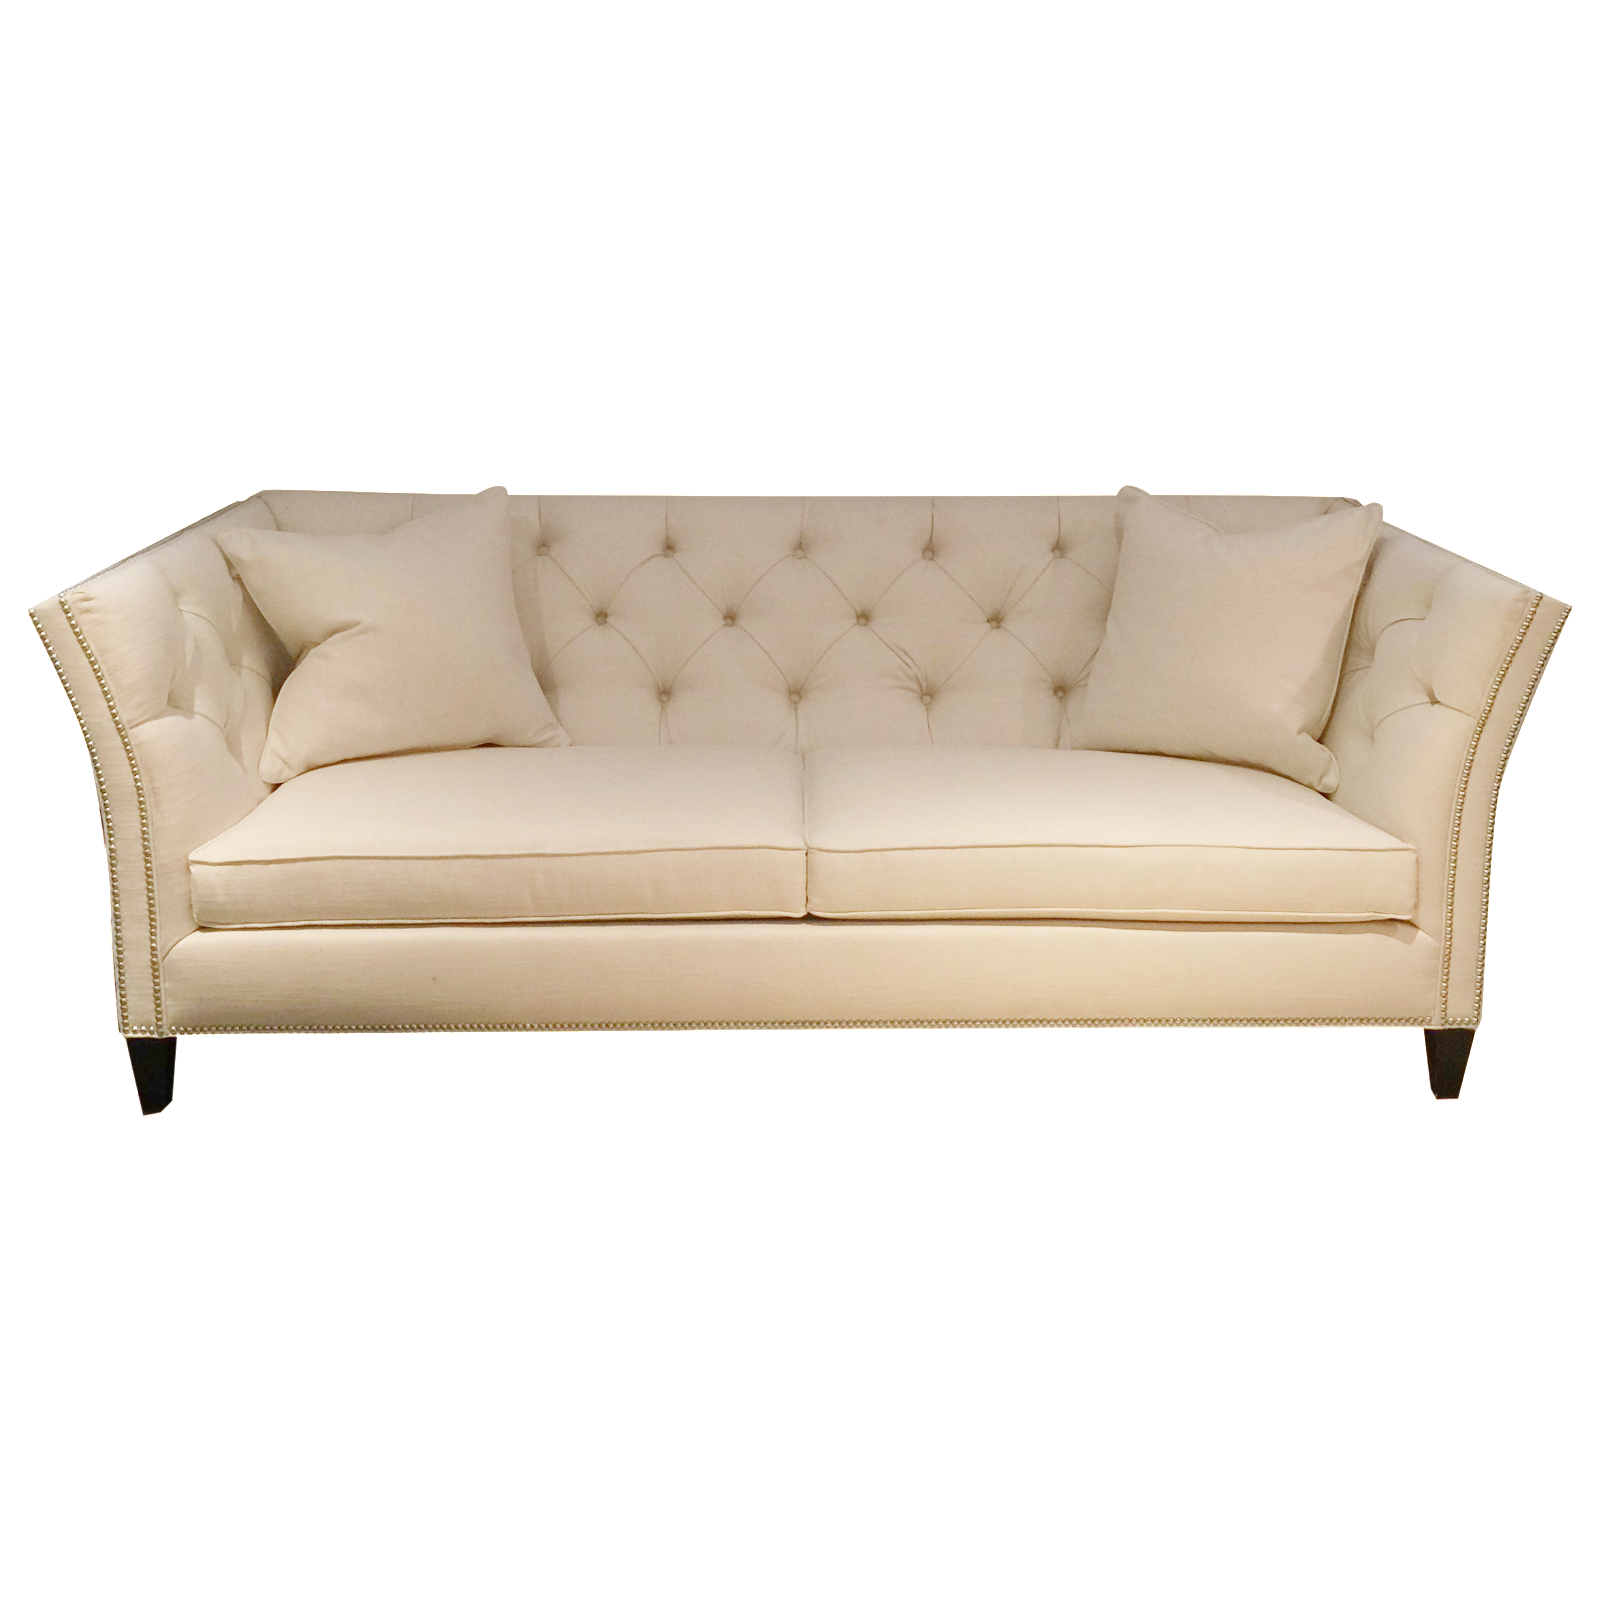 Ethan Allen Shelton Sofa Chairish